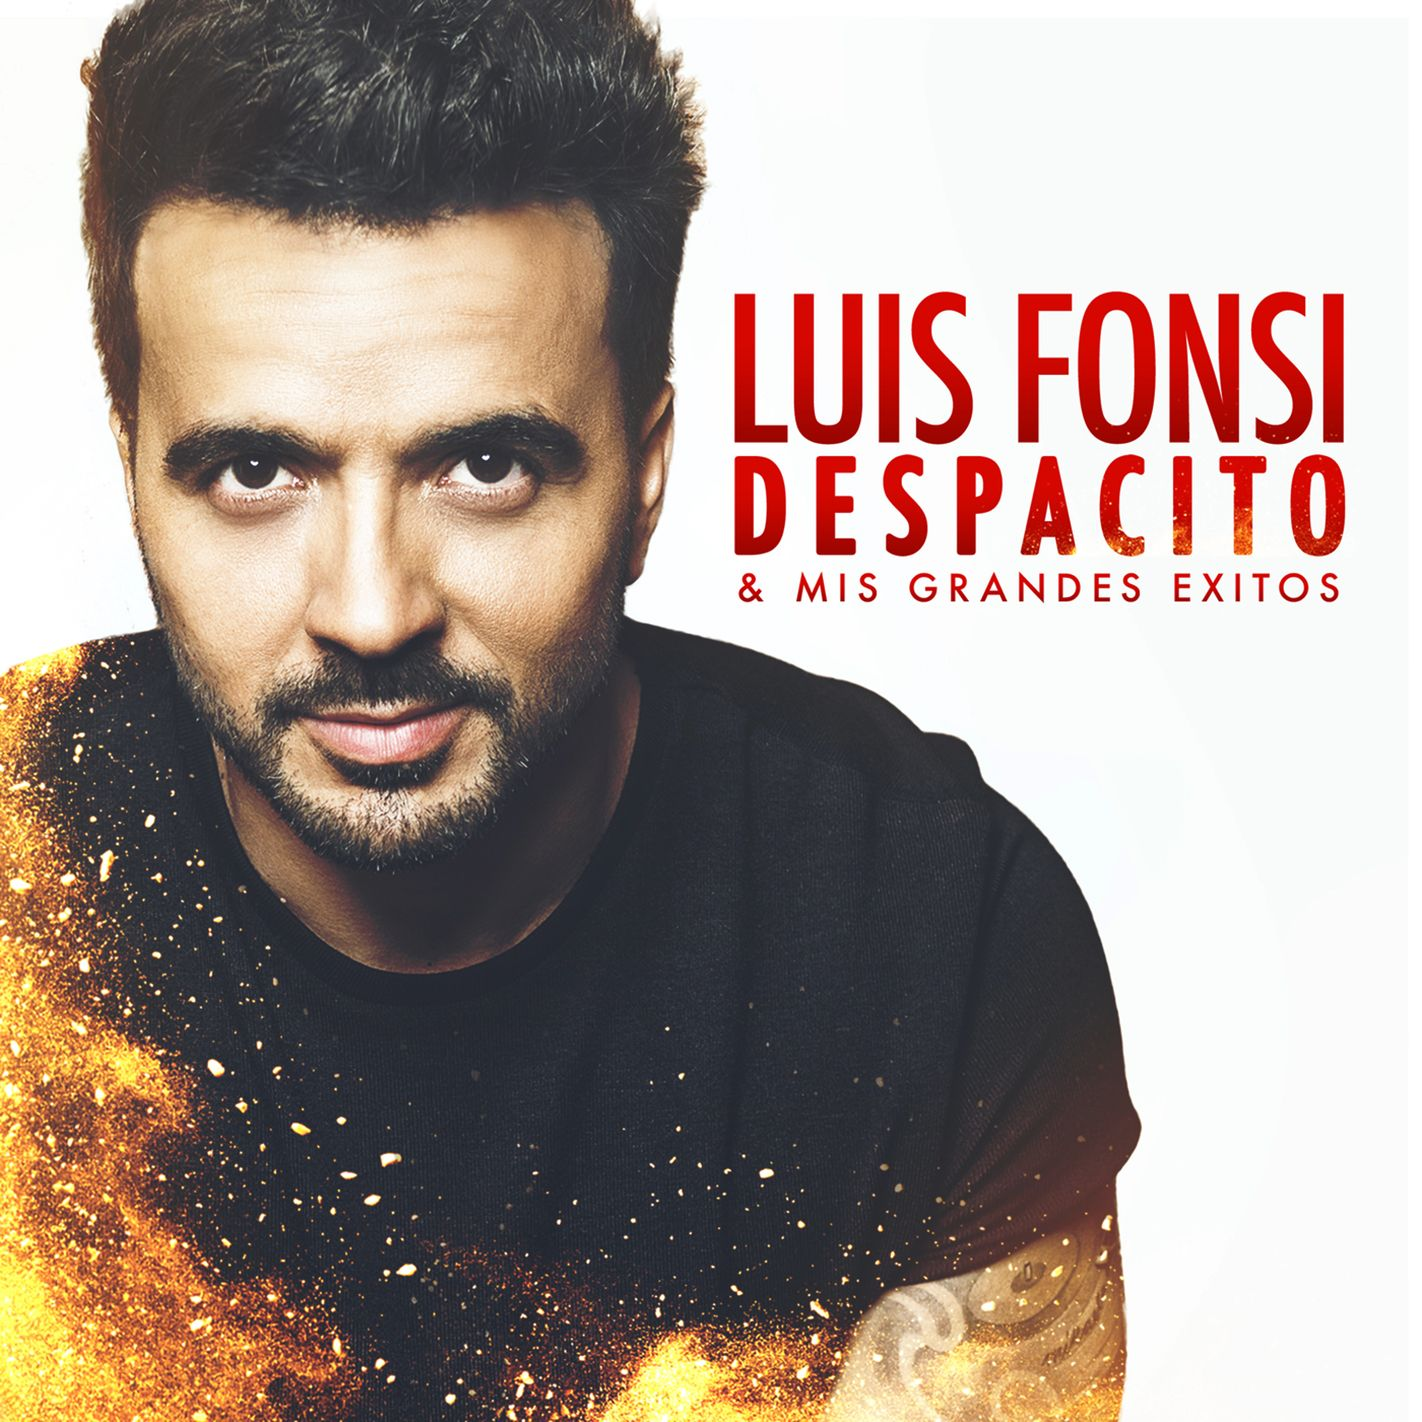 Luis Fonsi - Despacito & Mis Grandes éxitos album cover